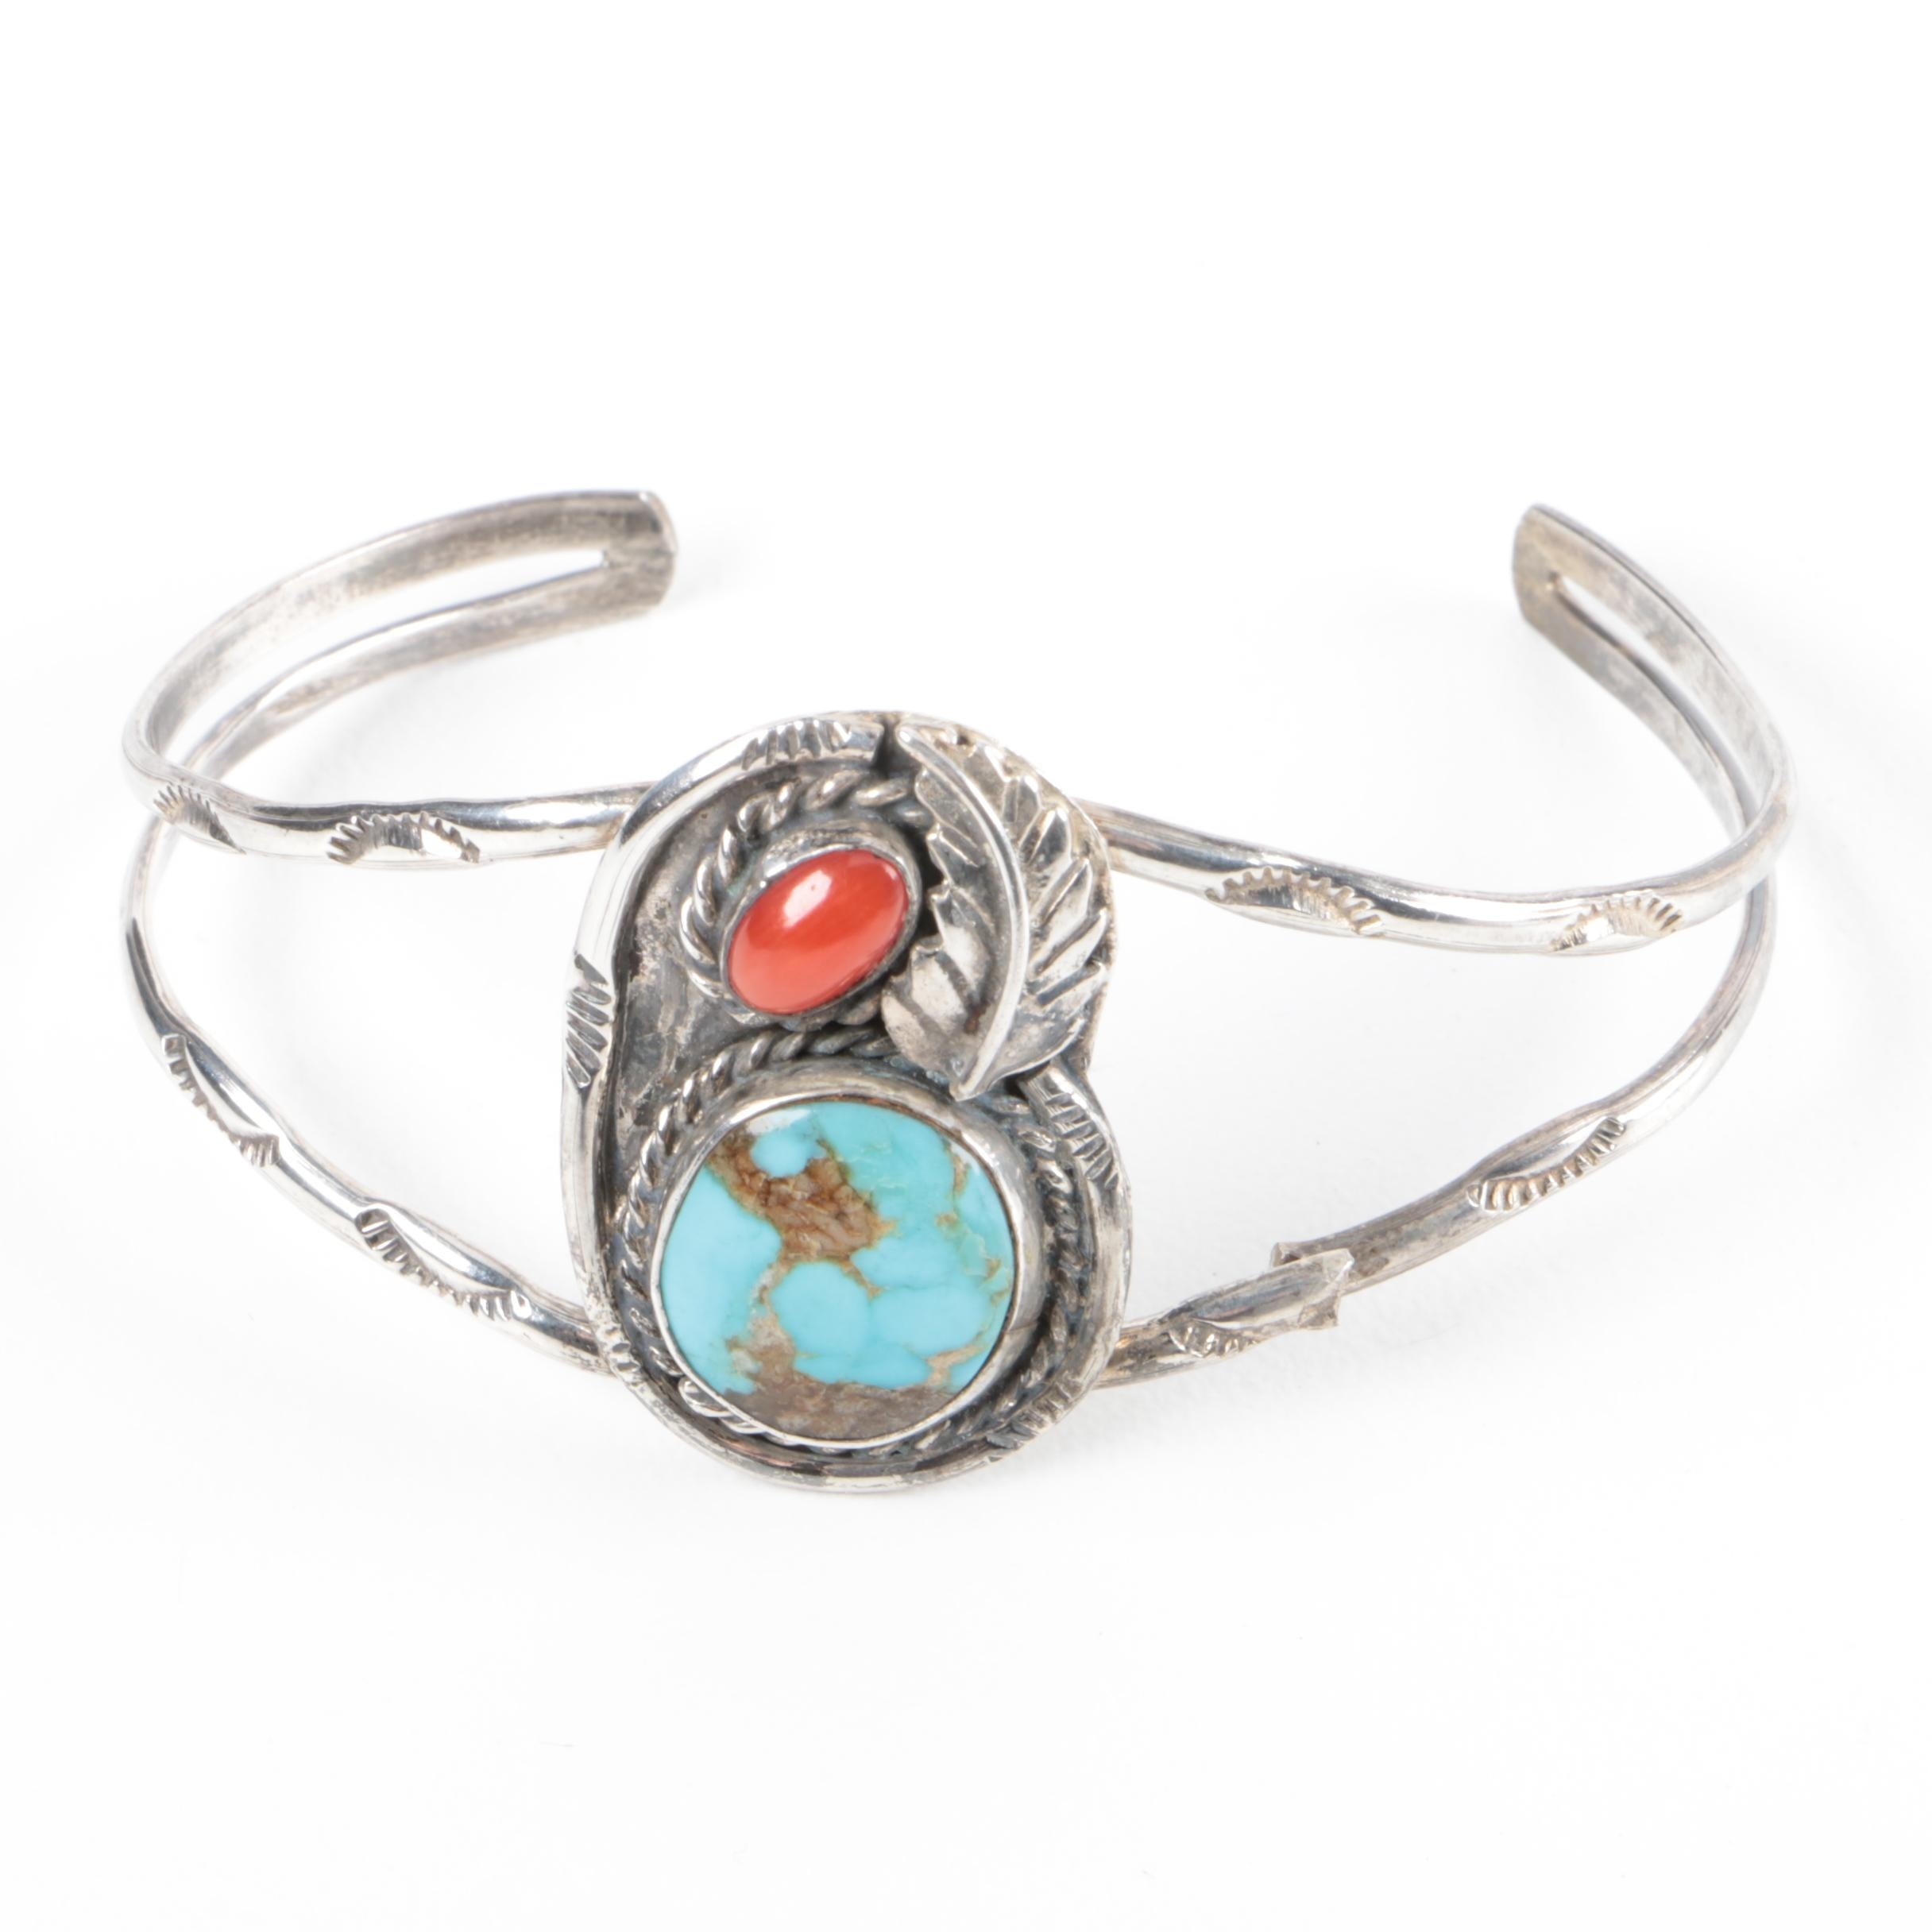 Native American Style Sterling Silver, Turquoise and Coral Cuff Bracelet